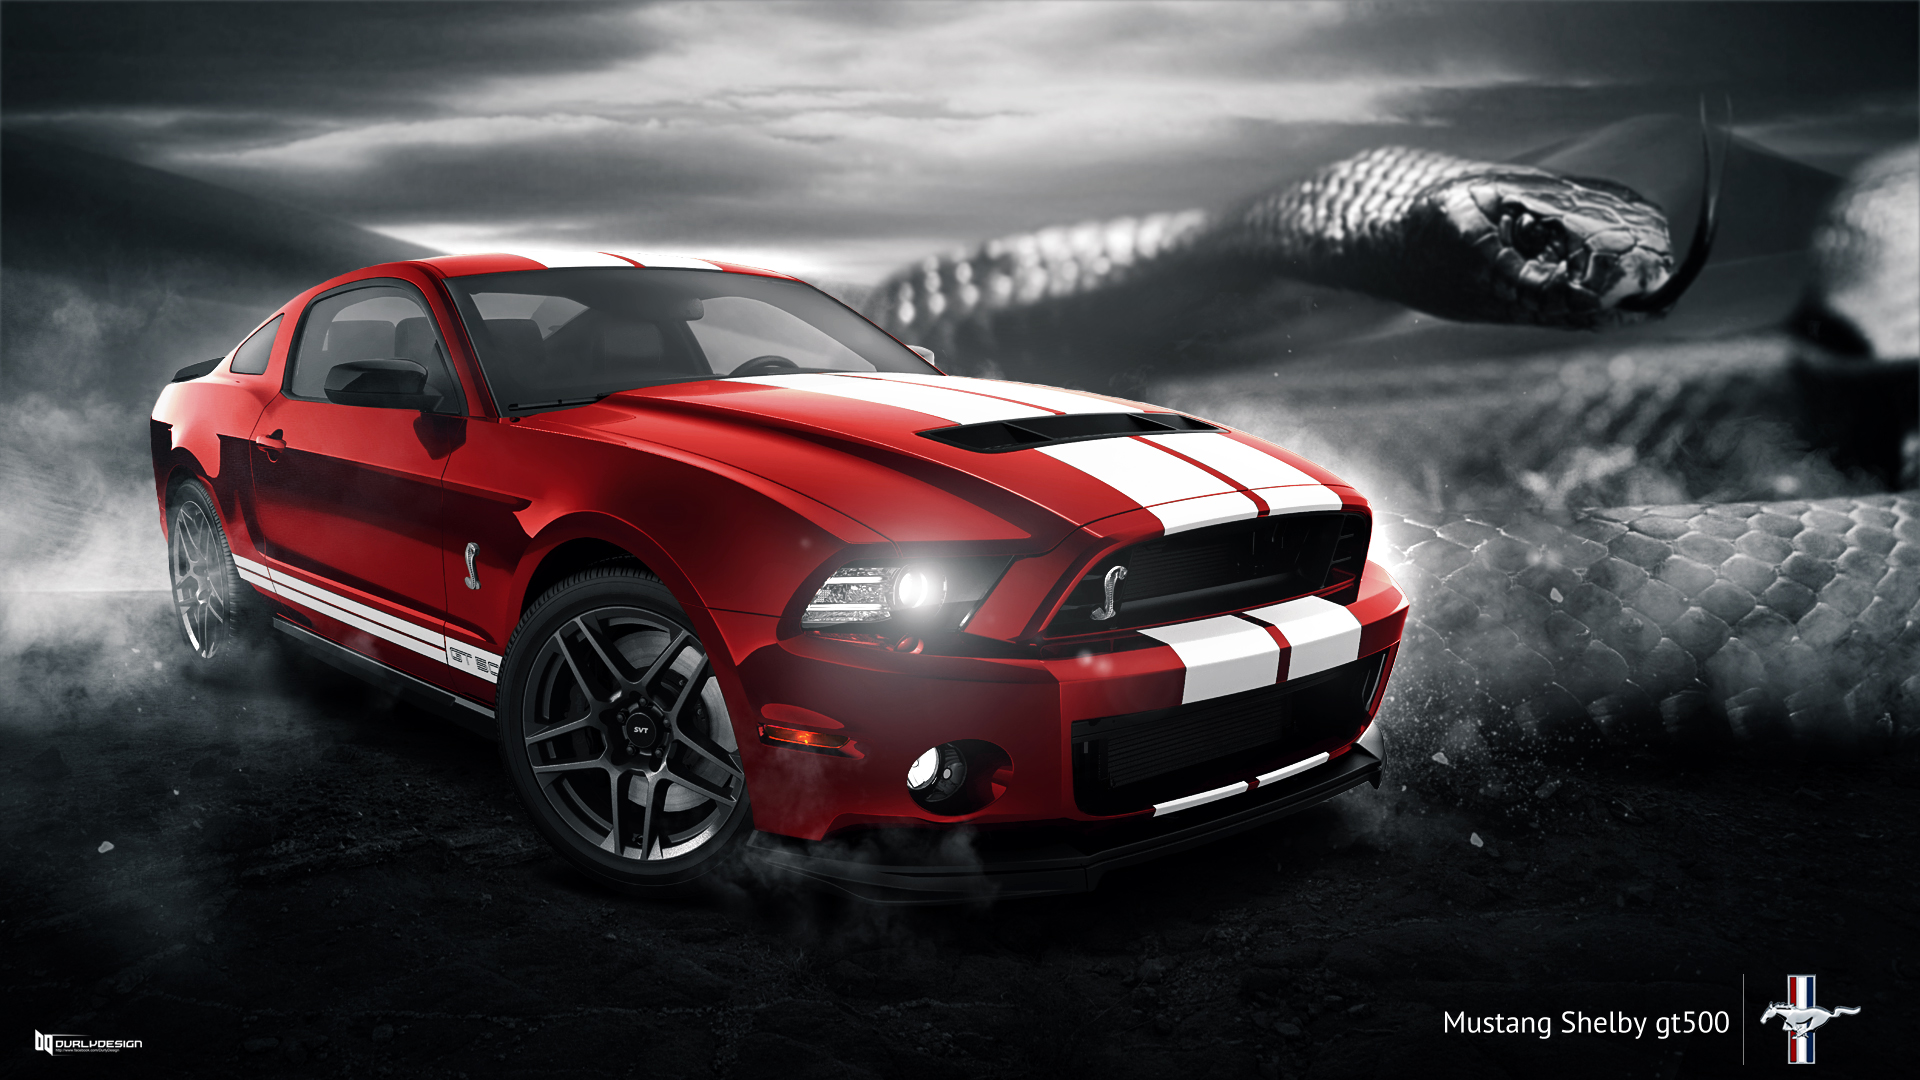 Super Snake 2017 >> Ford Mustang Shelby GT500 / Wallpaper by durly0505 on DeviantArt